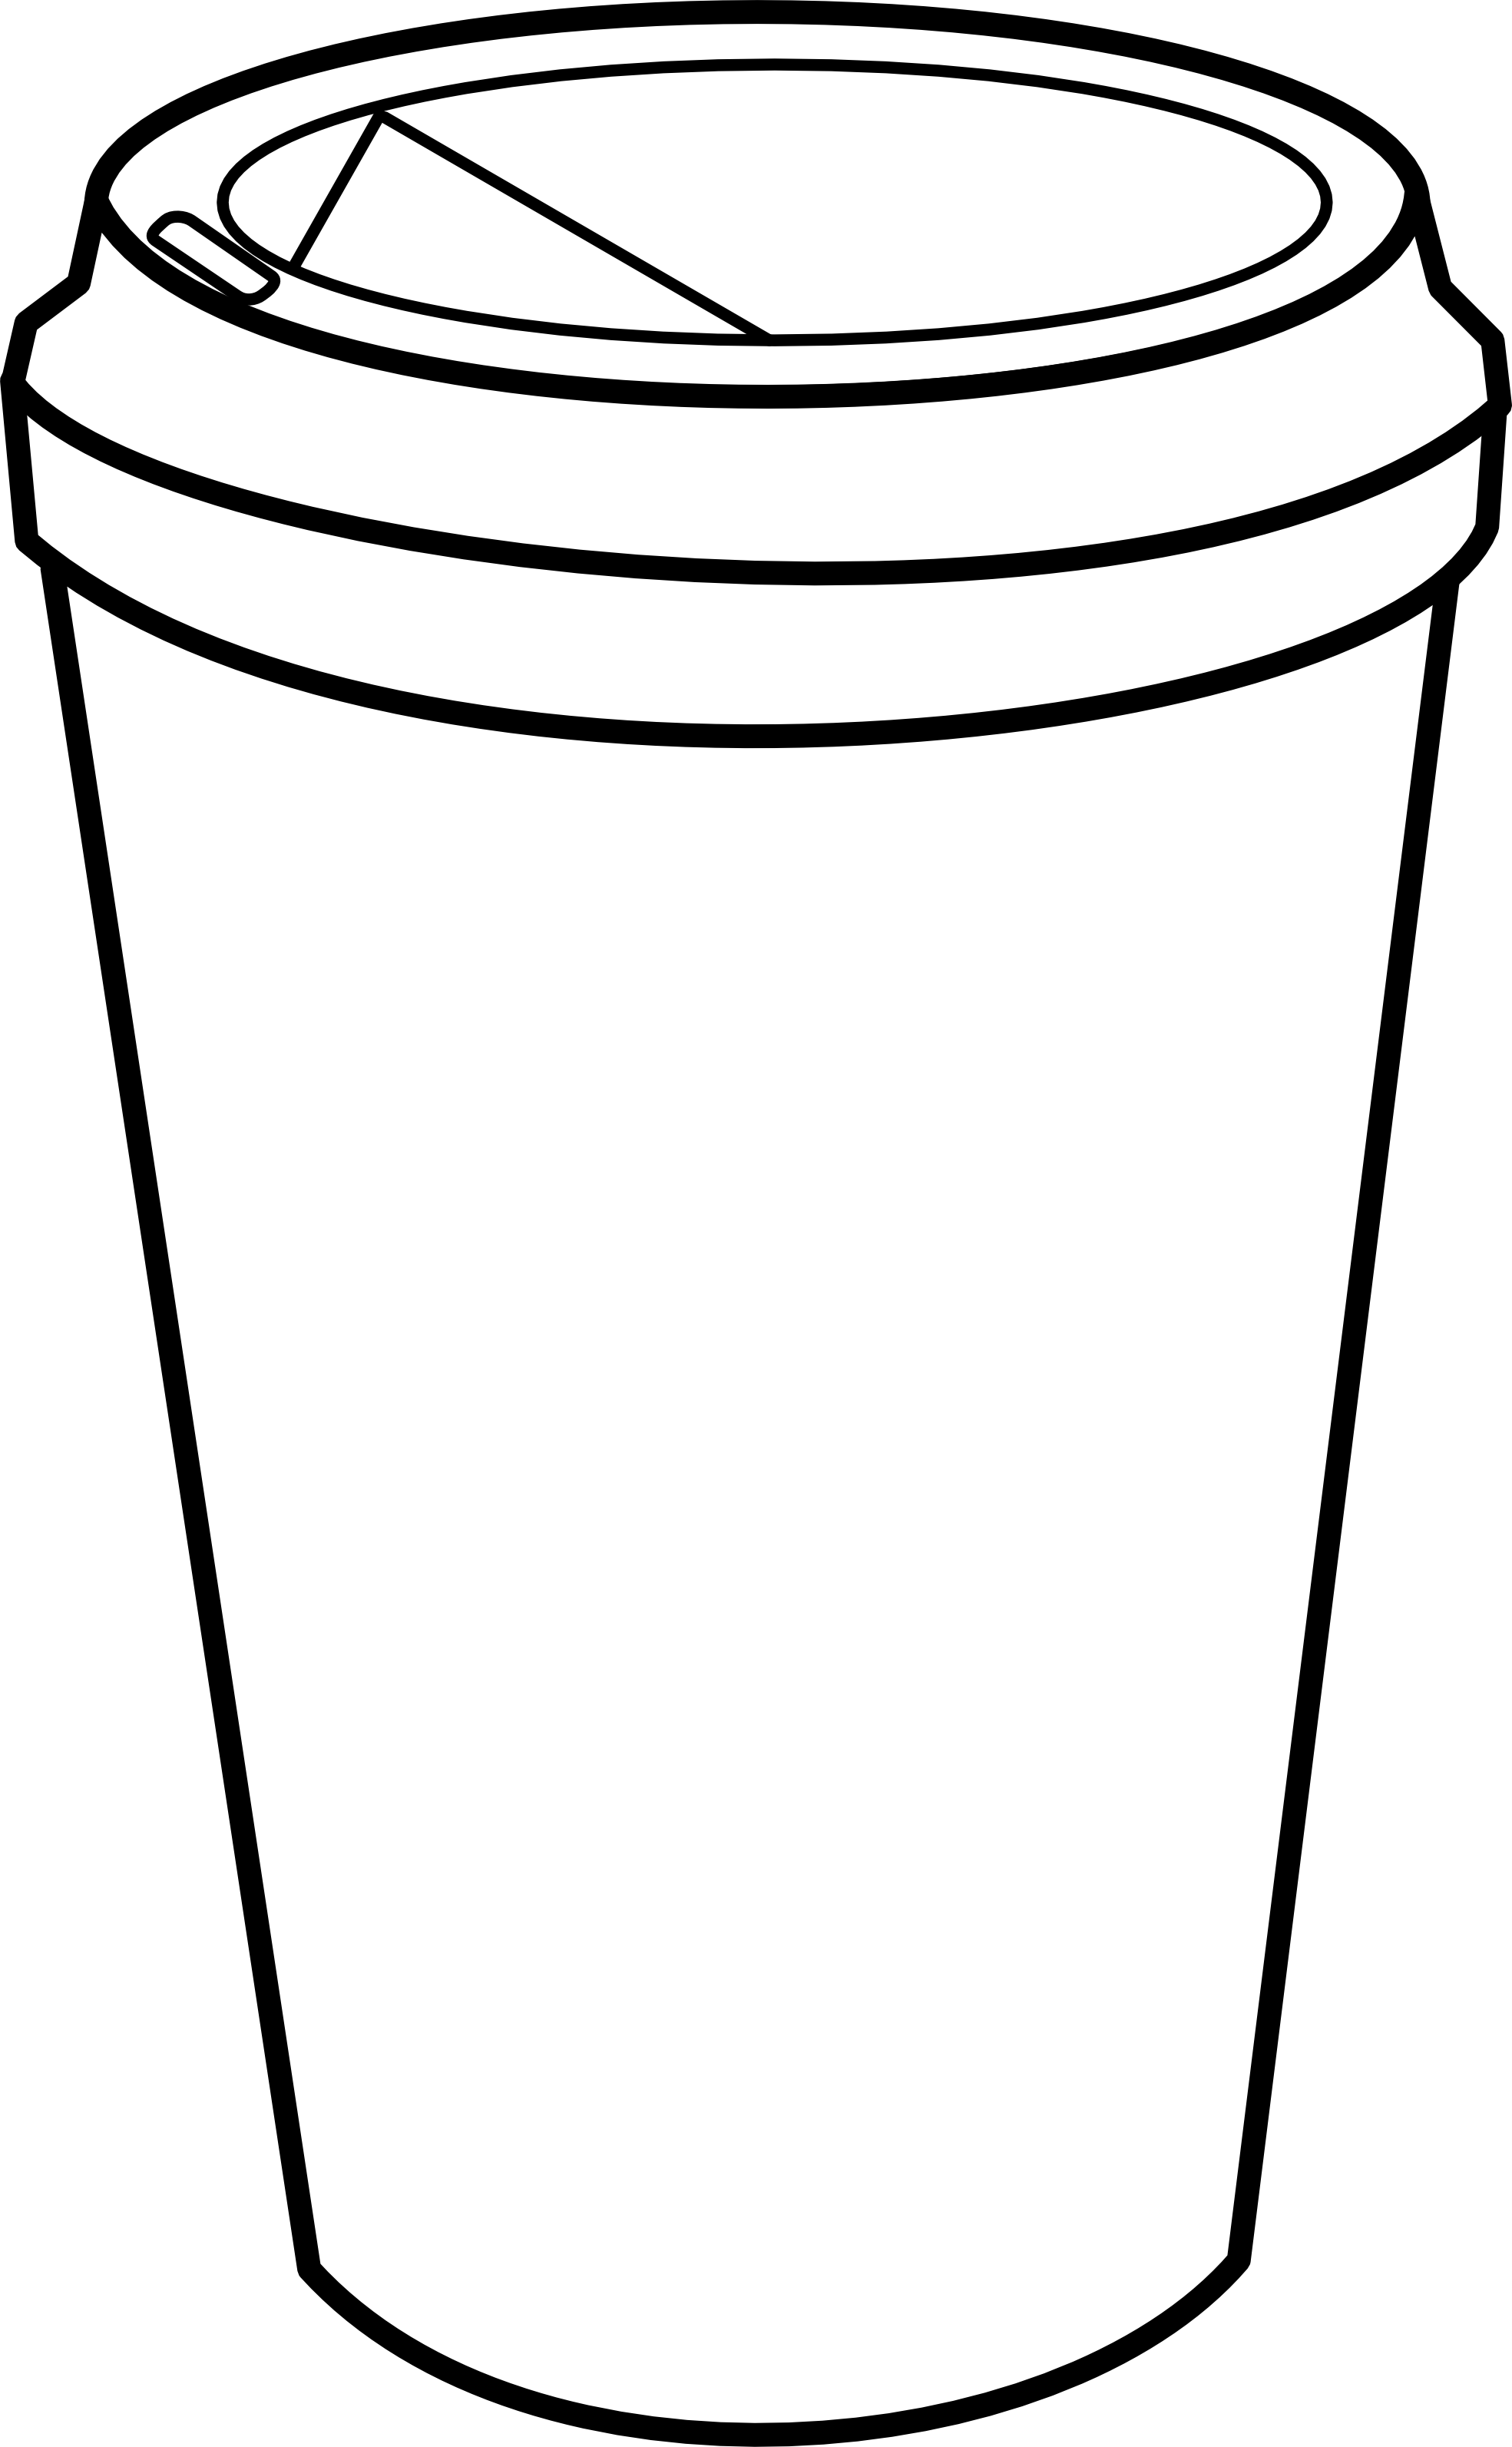 Black and white panda. Food clipart coffee